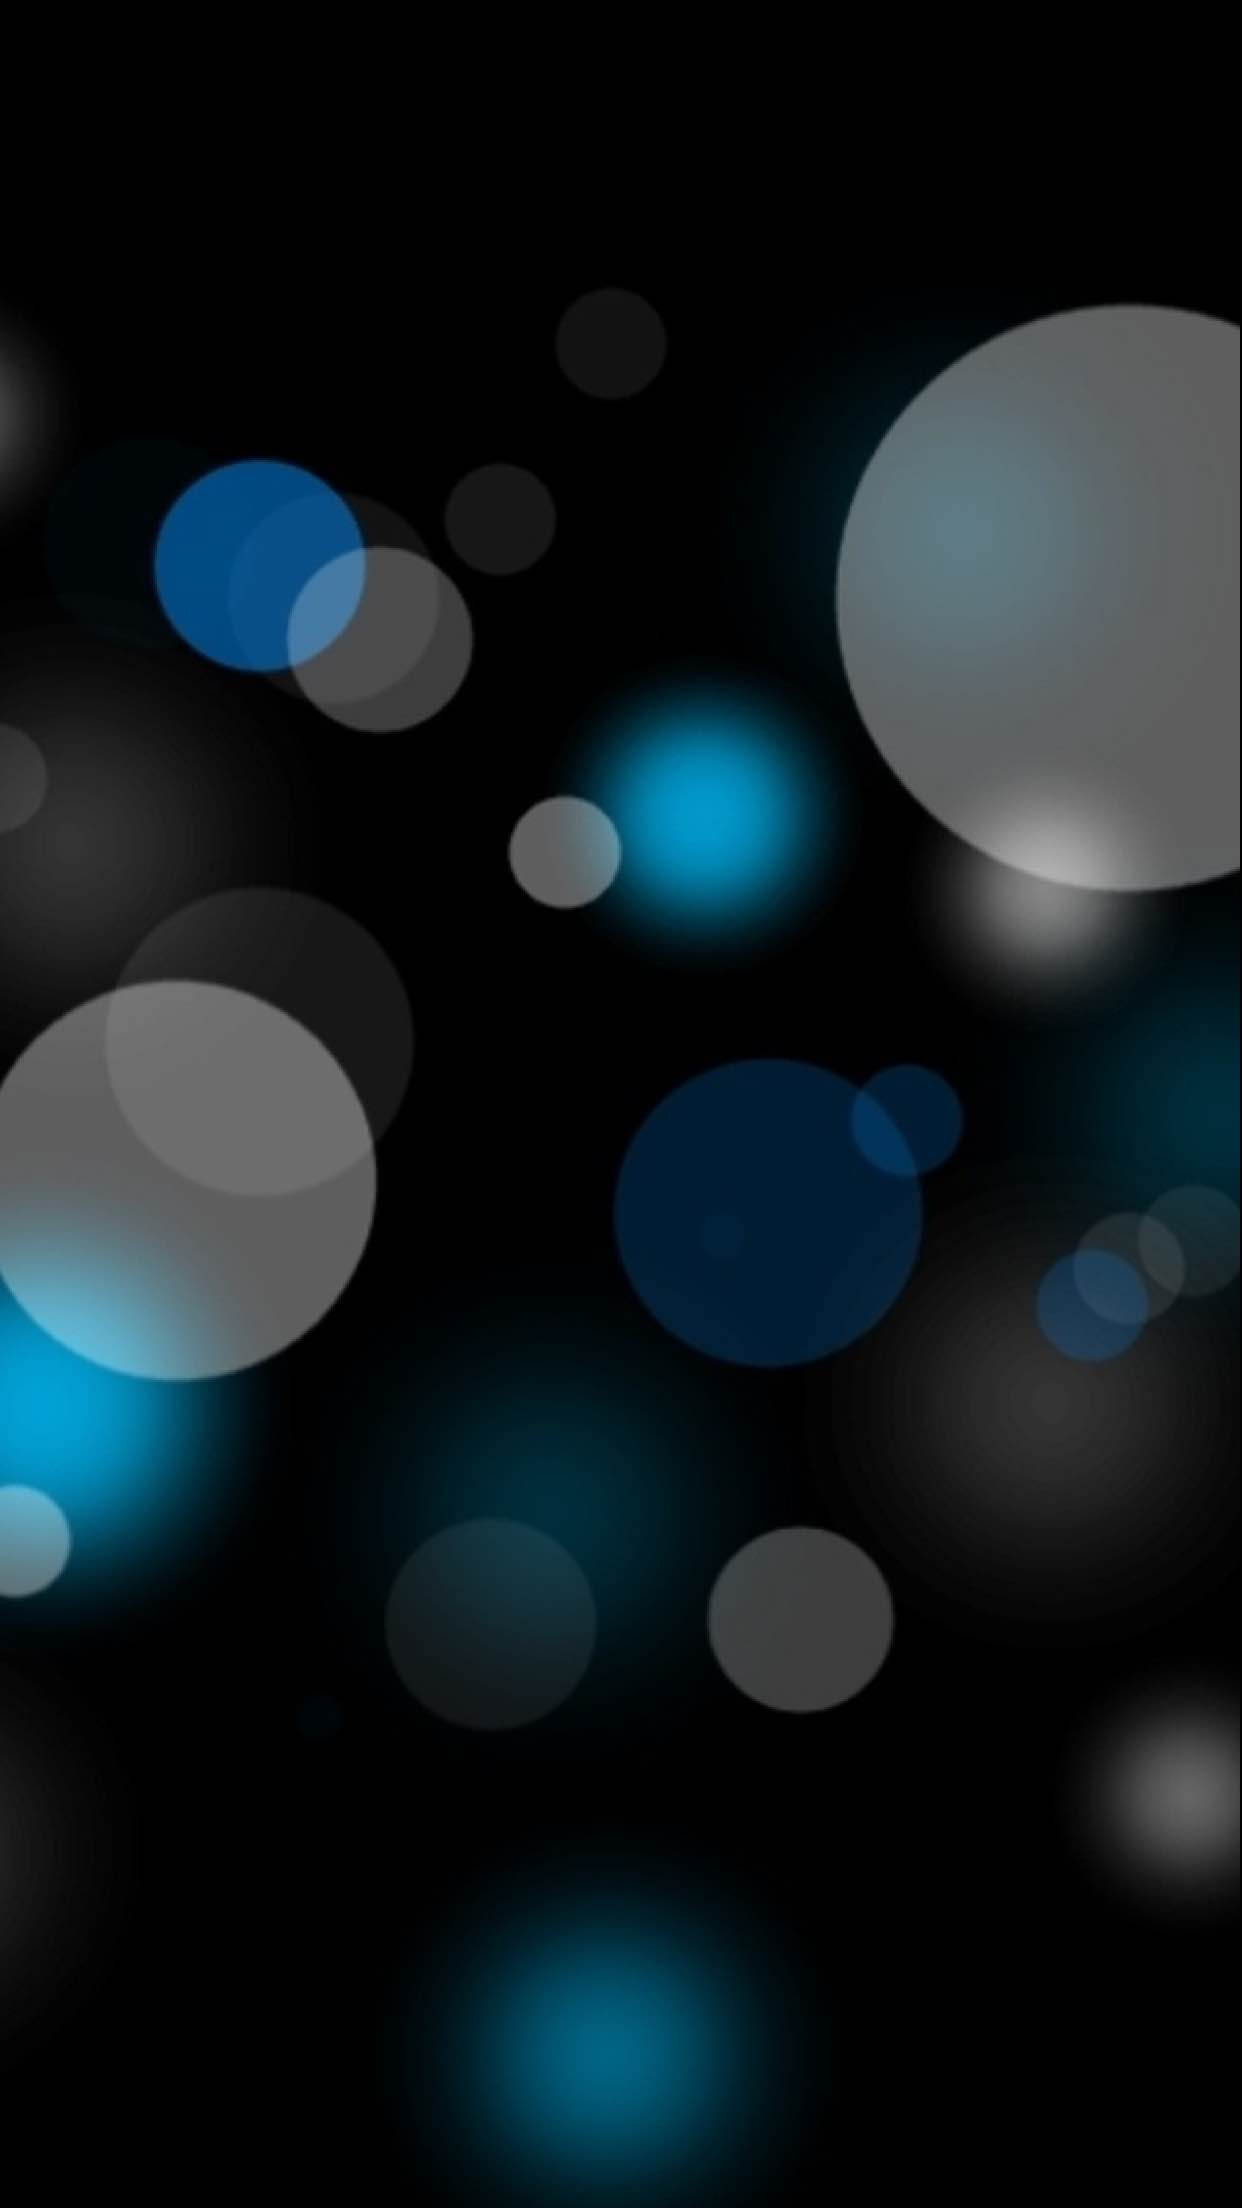 abstract 3 3Wallpapers iPhone Parallax Abstract 3